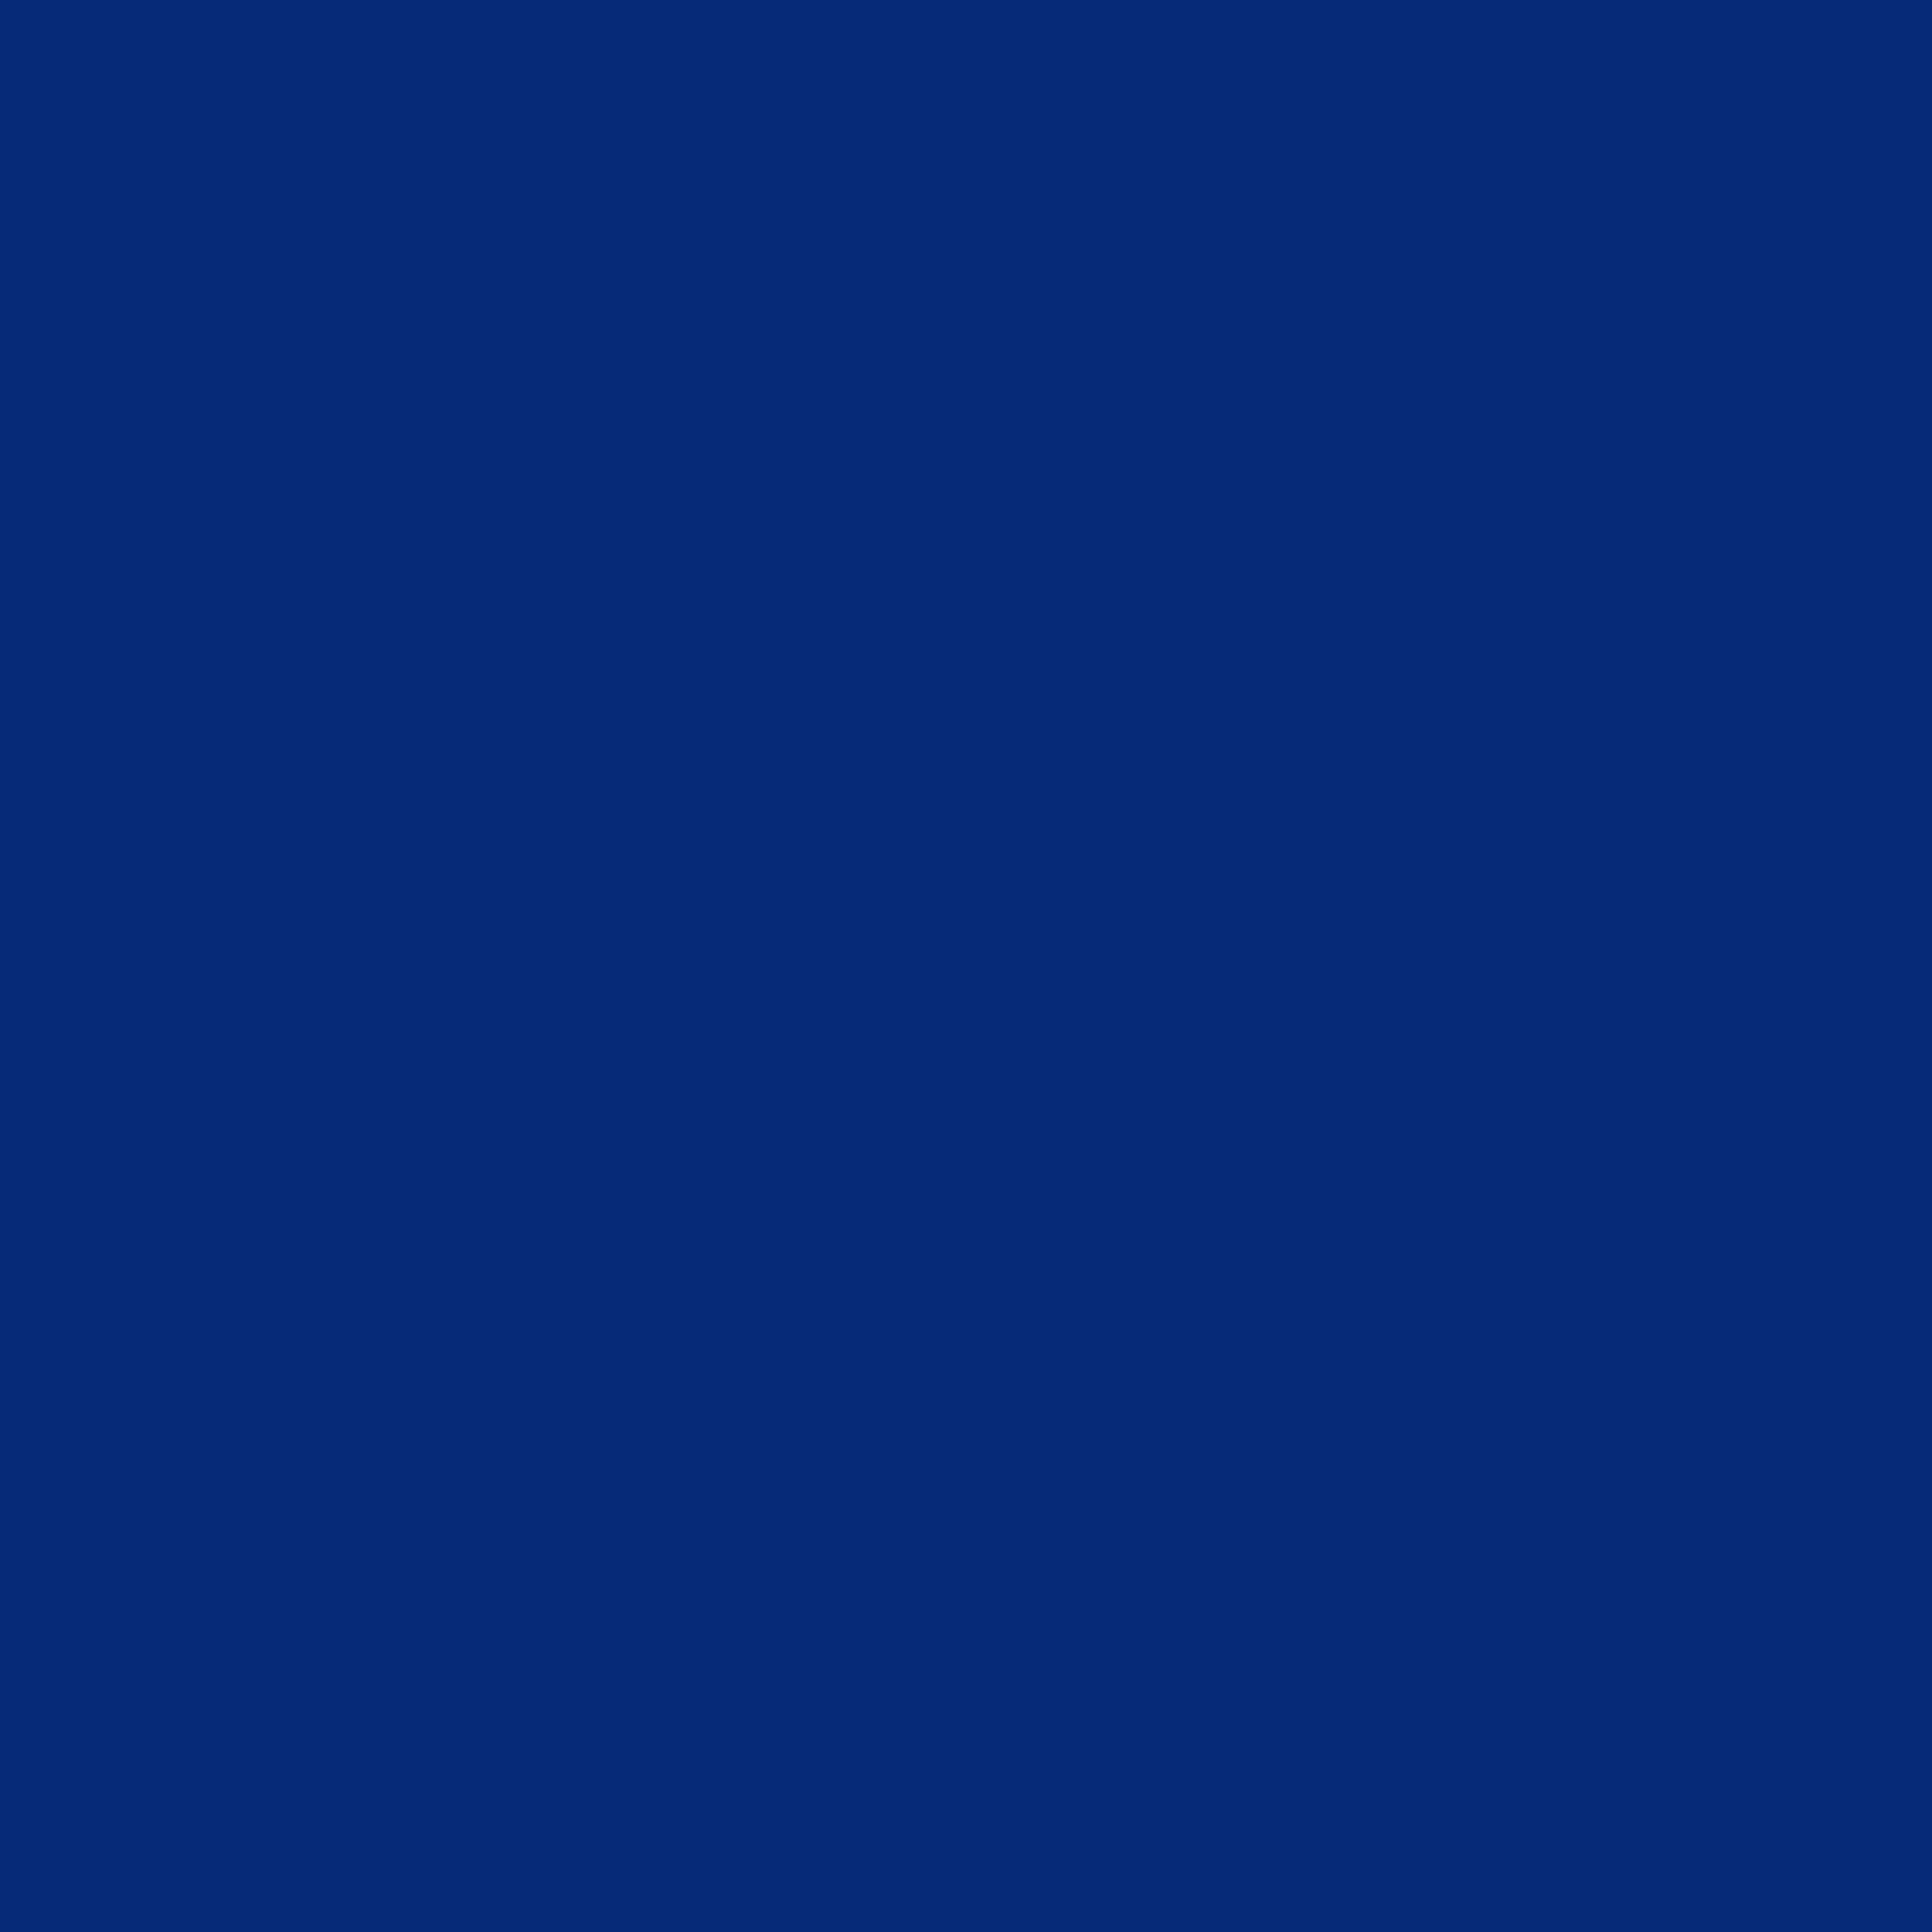 2732x2732 Catalina Blue Solid Color Background